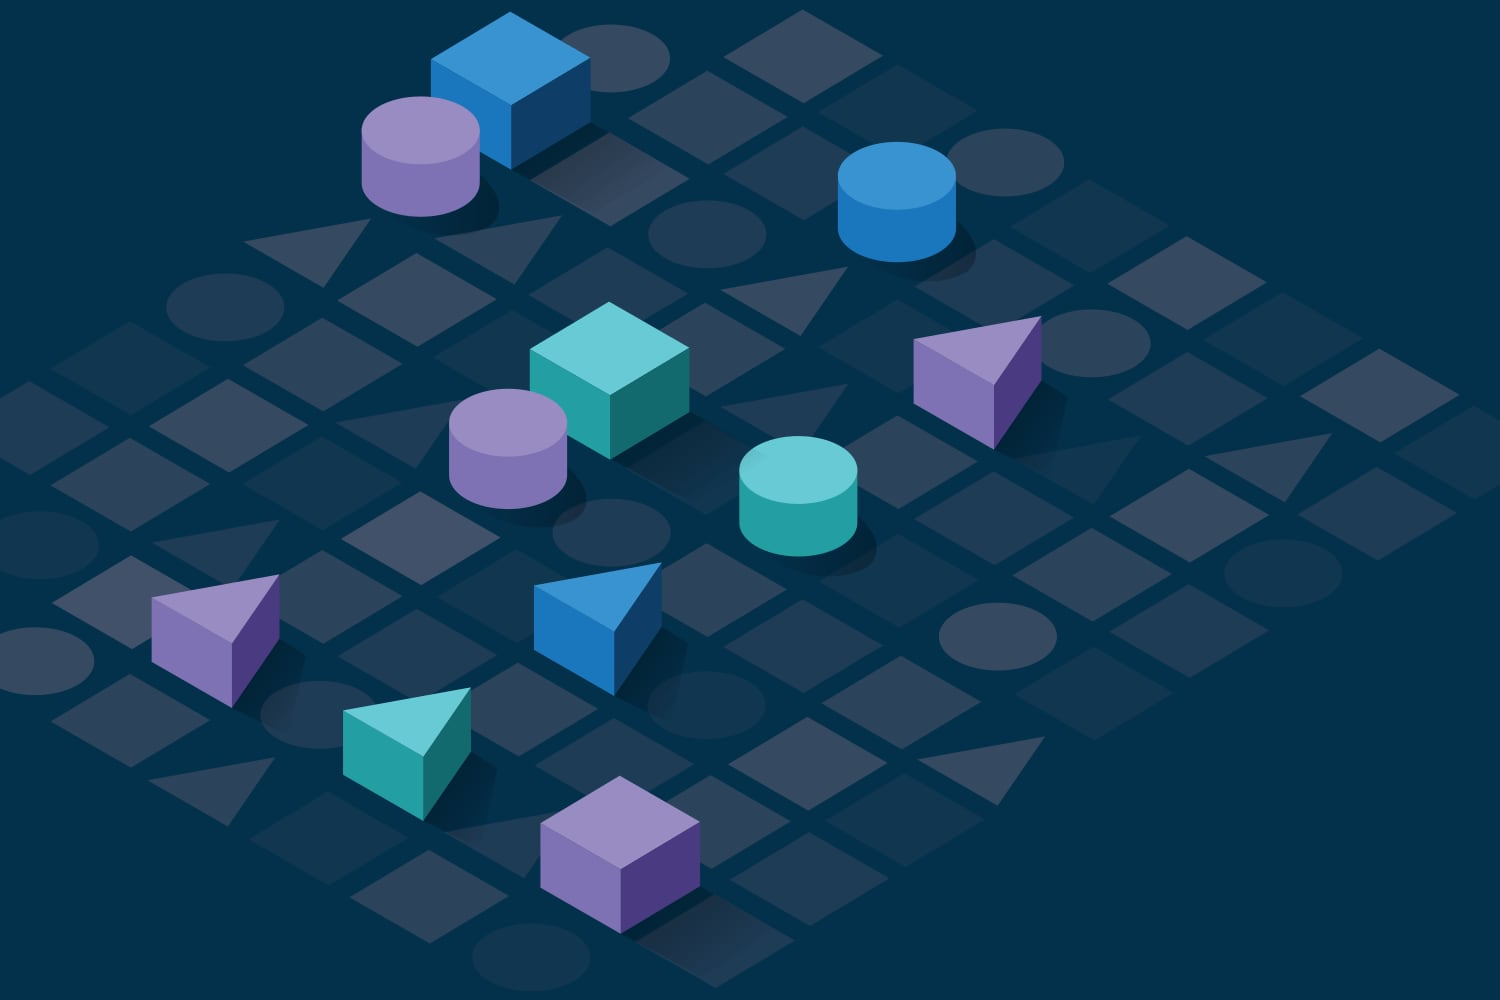 Cubes, cylinders and triangles on a three dimensional grid